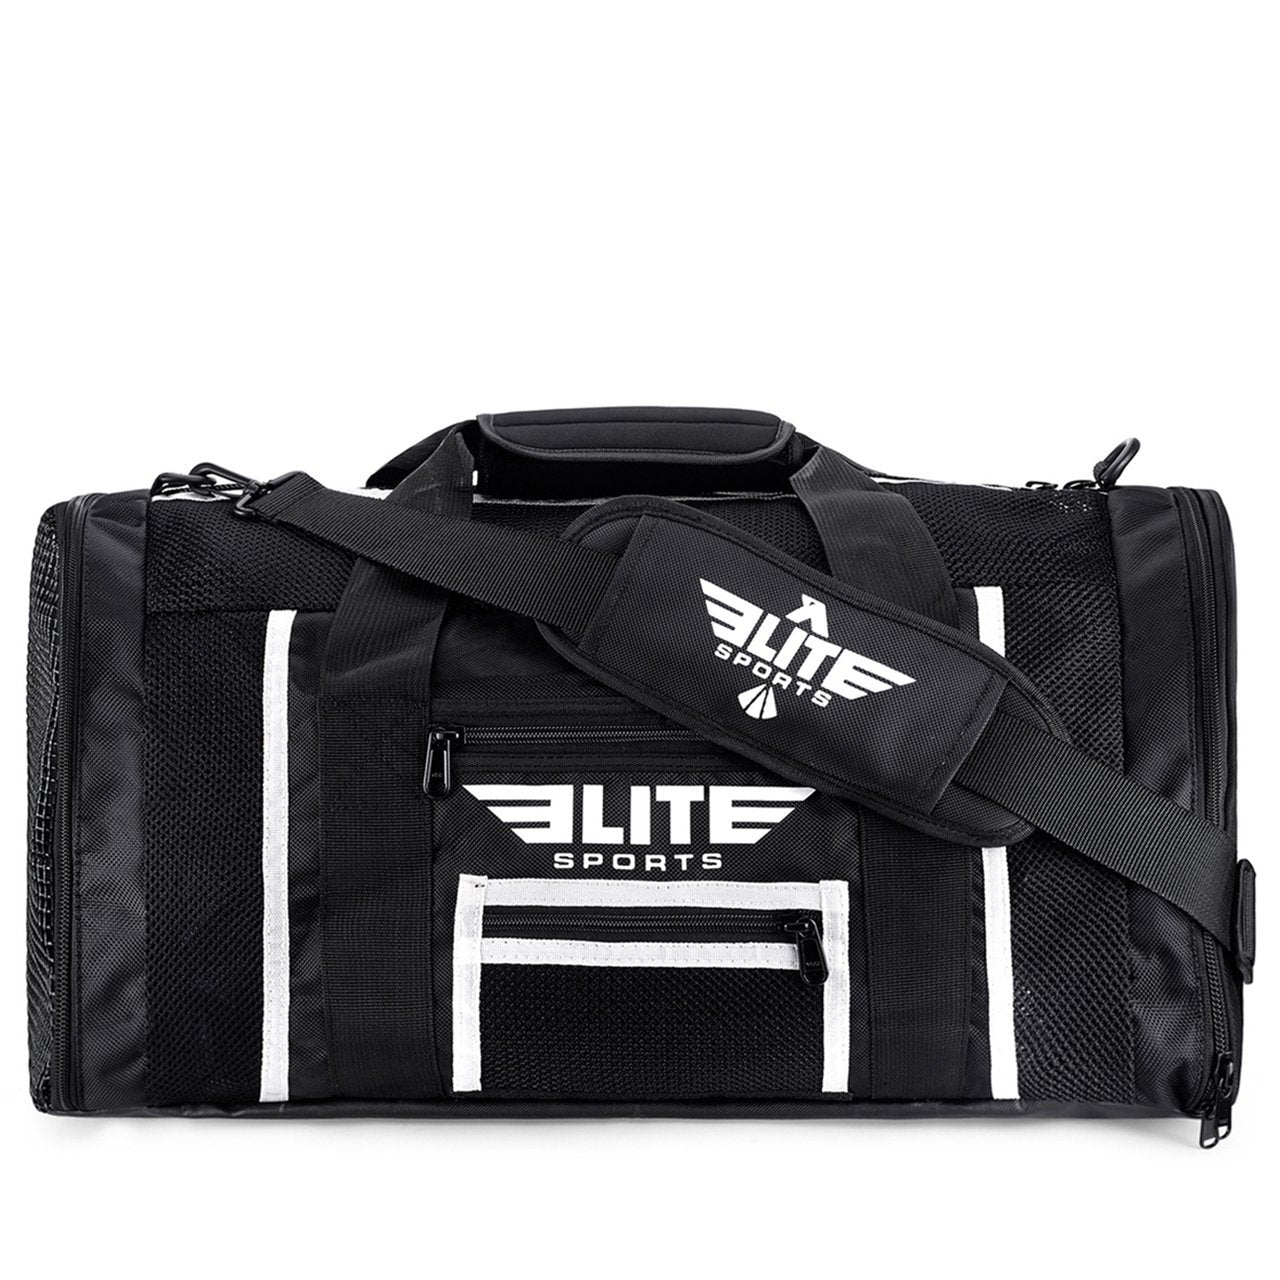 Elite Sports Mesh Black Large Karate Gear Gym Bag